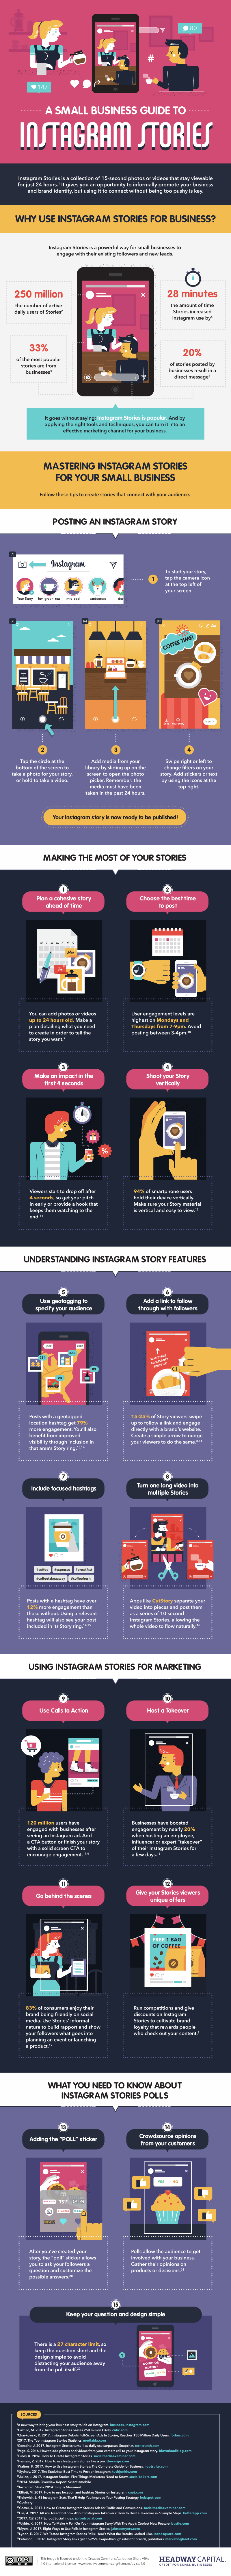 guide to instagram stories